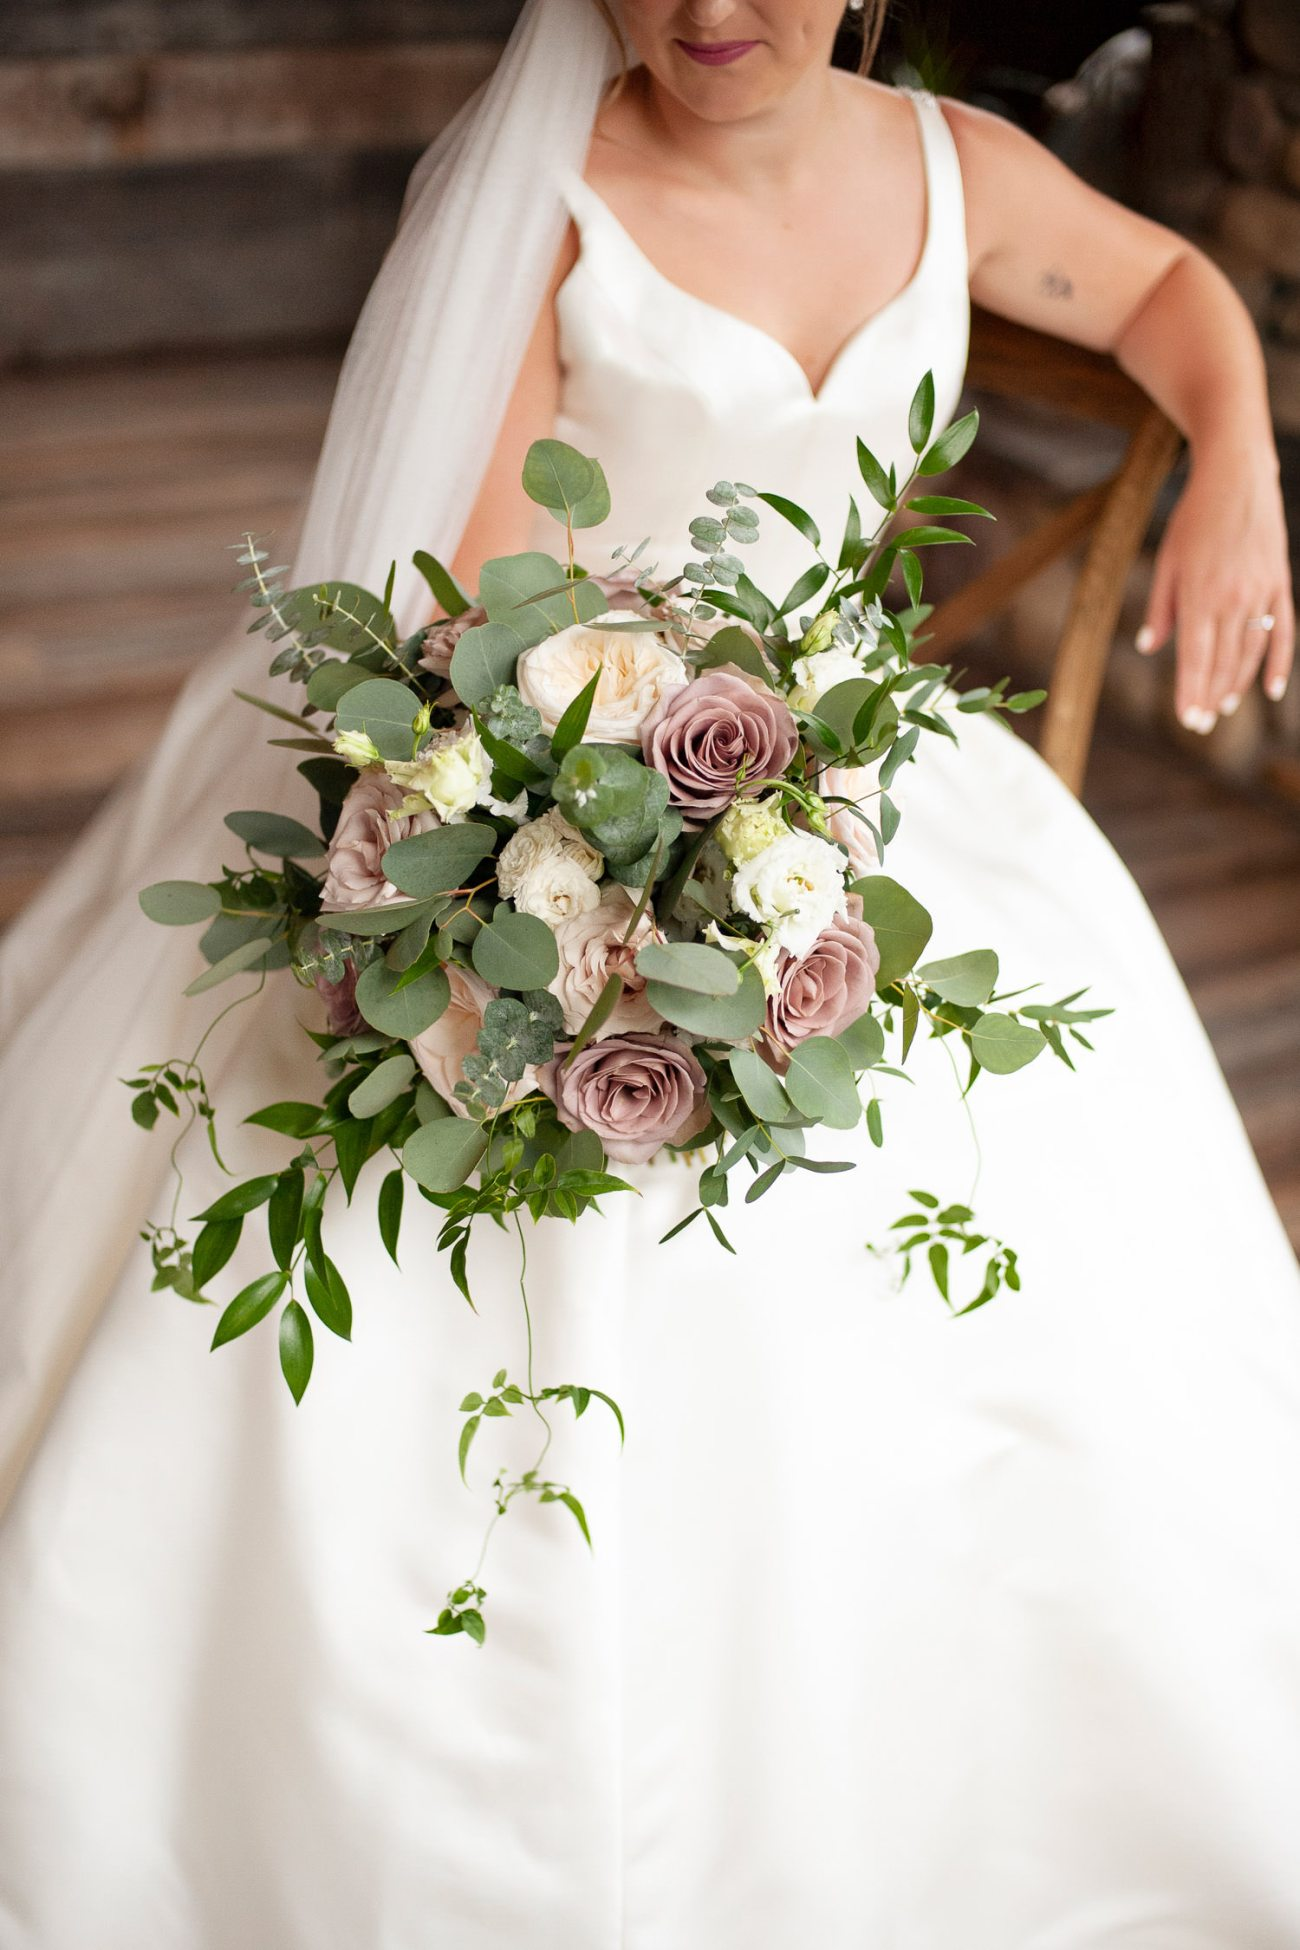 Bridal bouquet from Willow Flower Co. in Canmore captured by Tara Whittaker Photography